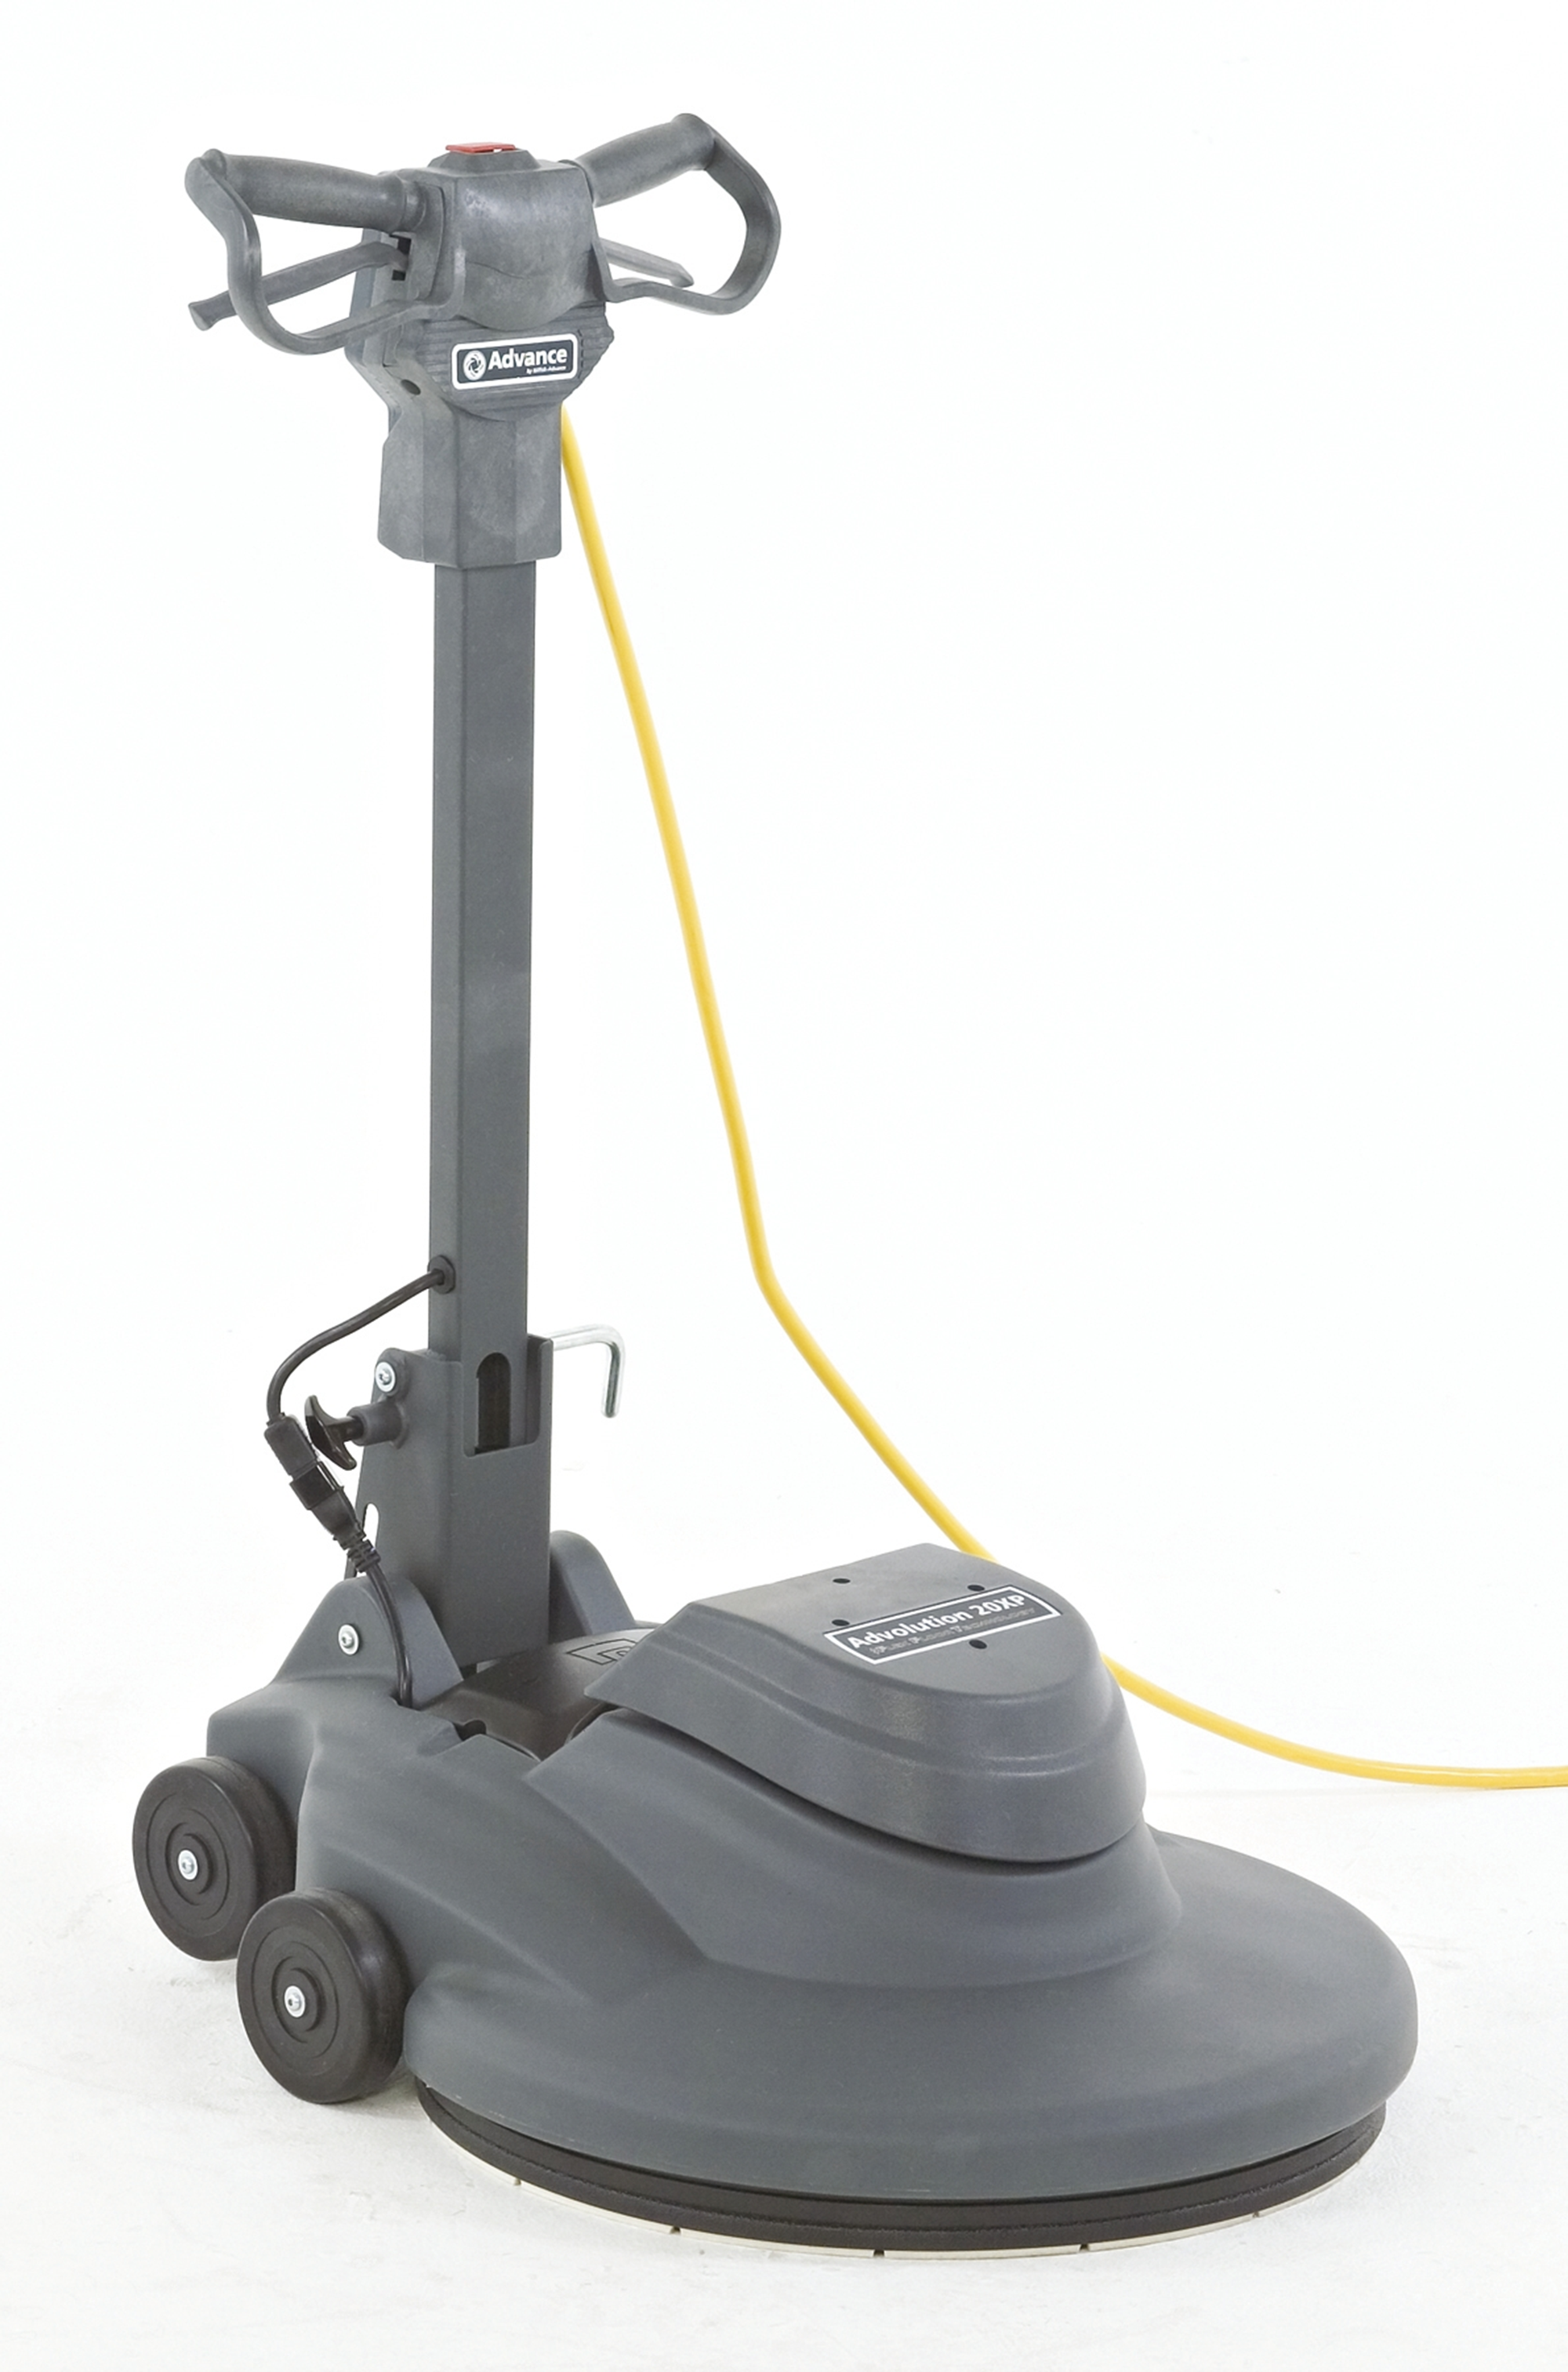 Product, Floor cleaning, Burnishers, Electric cord, Nilfisk, ADVOLUTION 20 BURNISHER